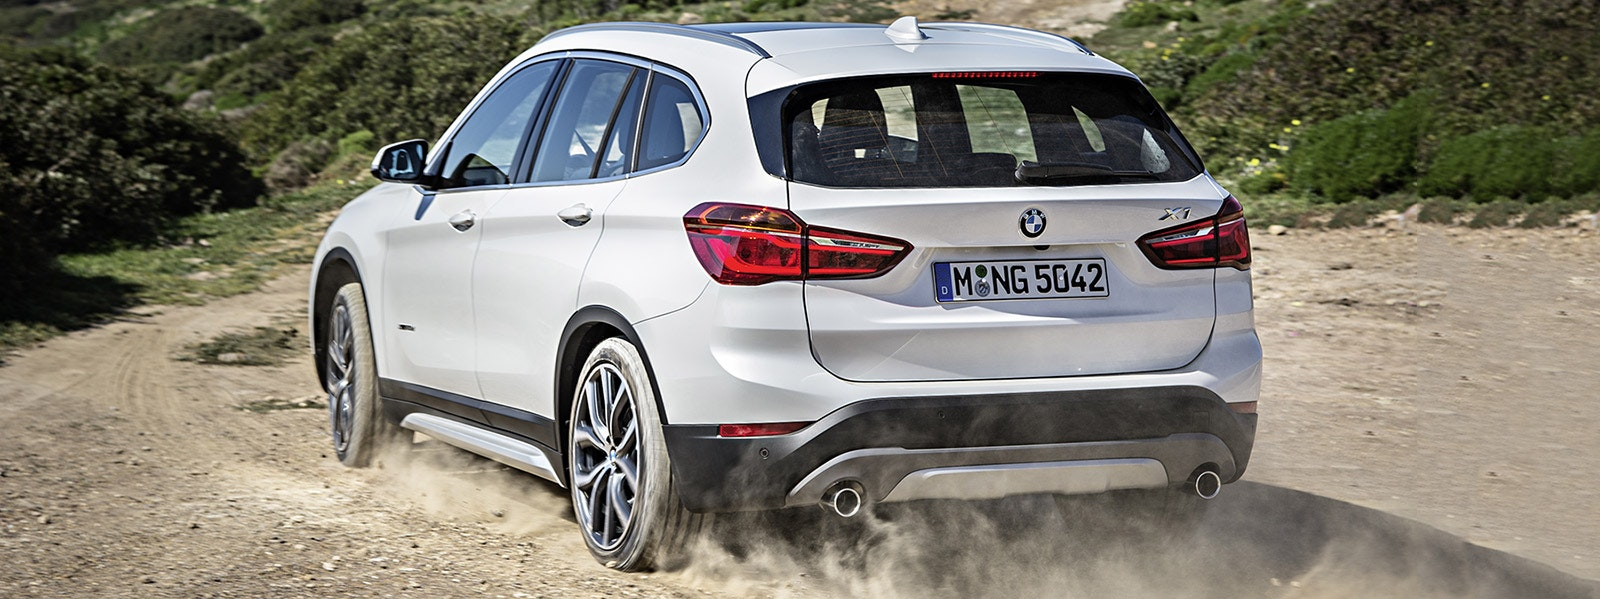 bmw x1 sizes and dimensions guide | carwow